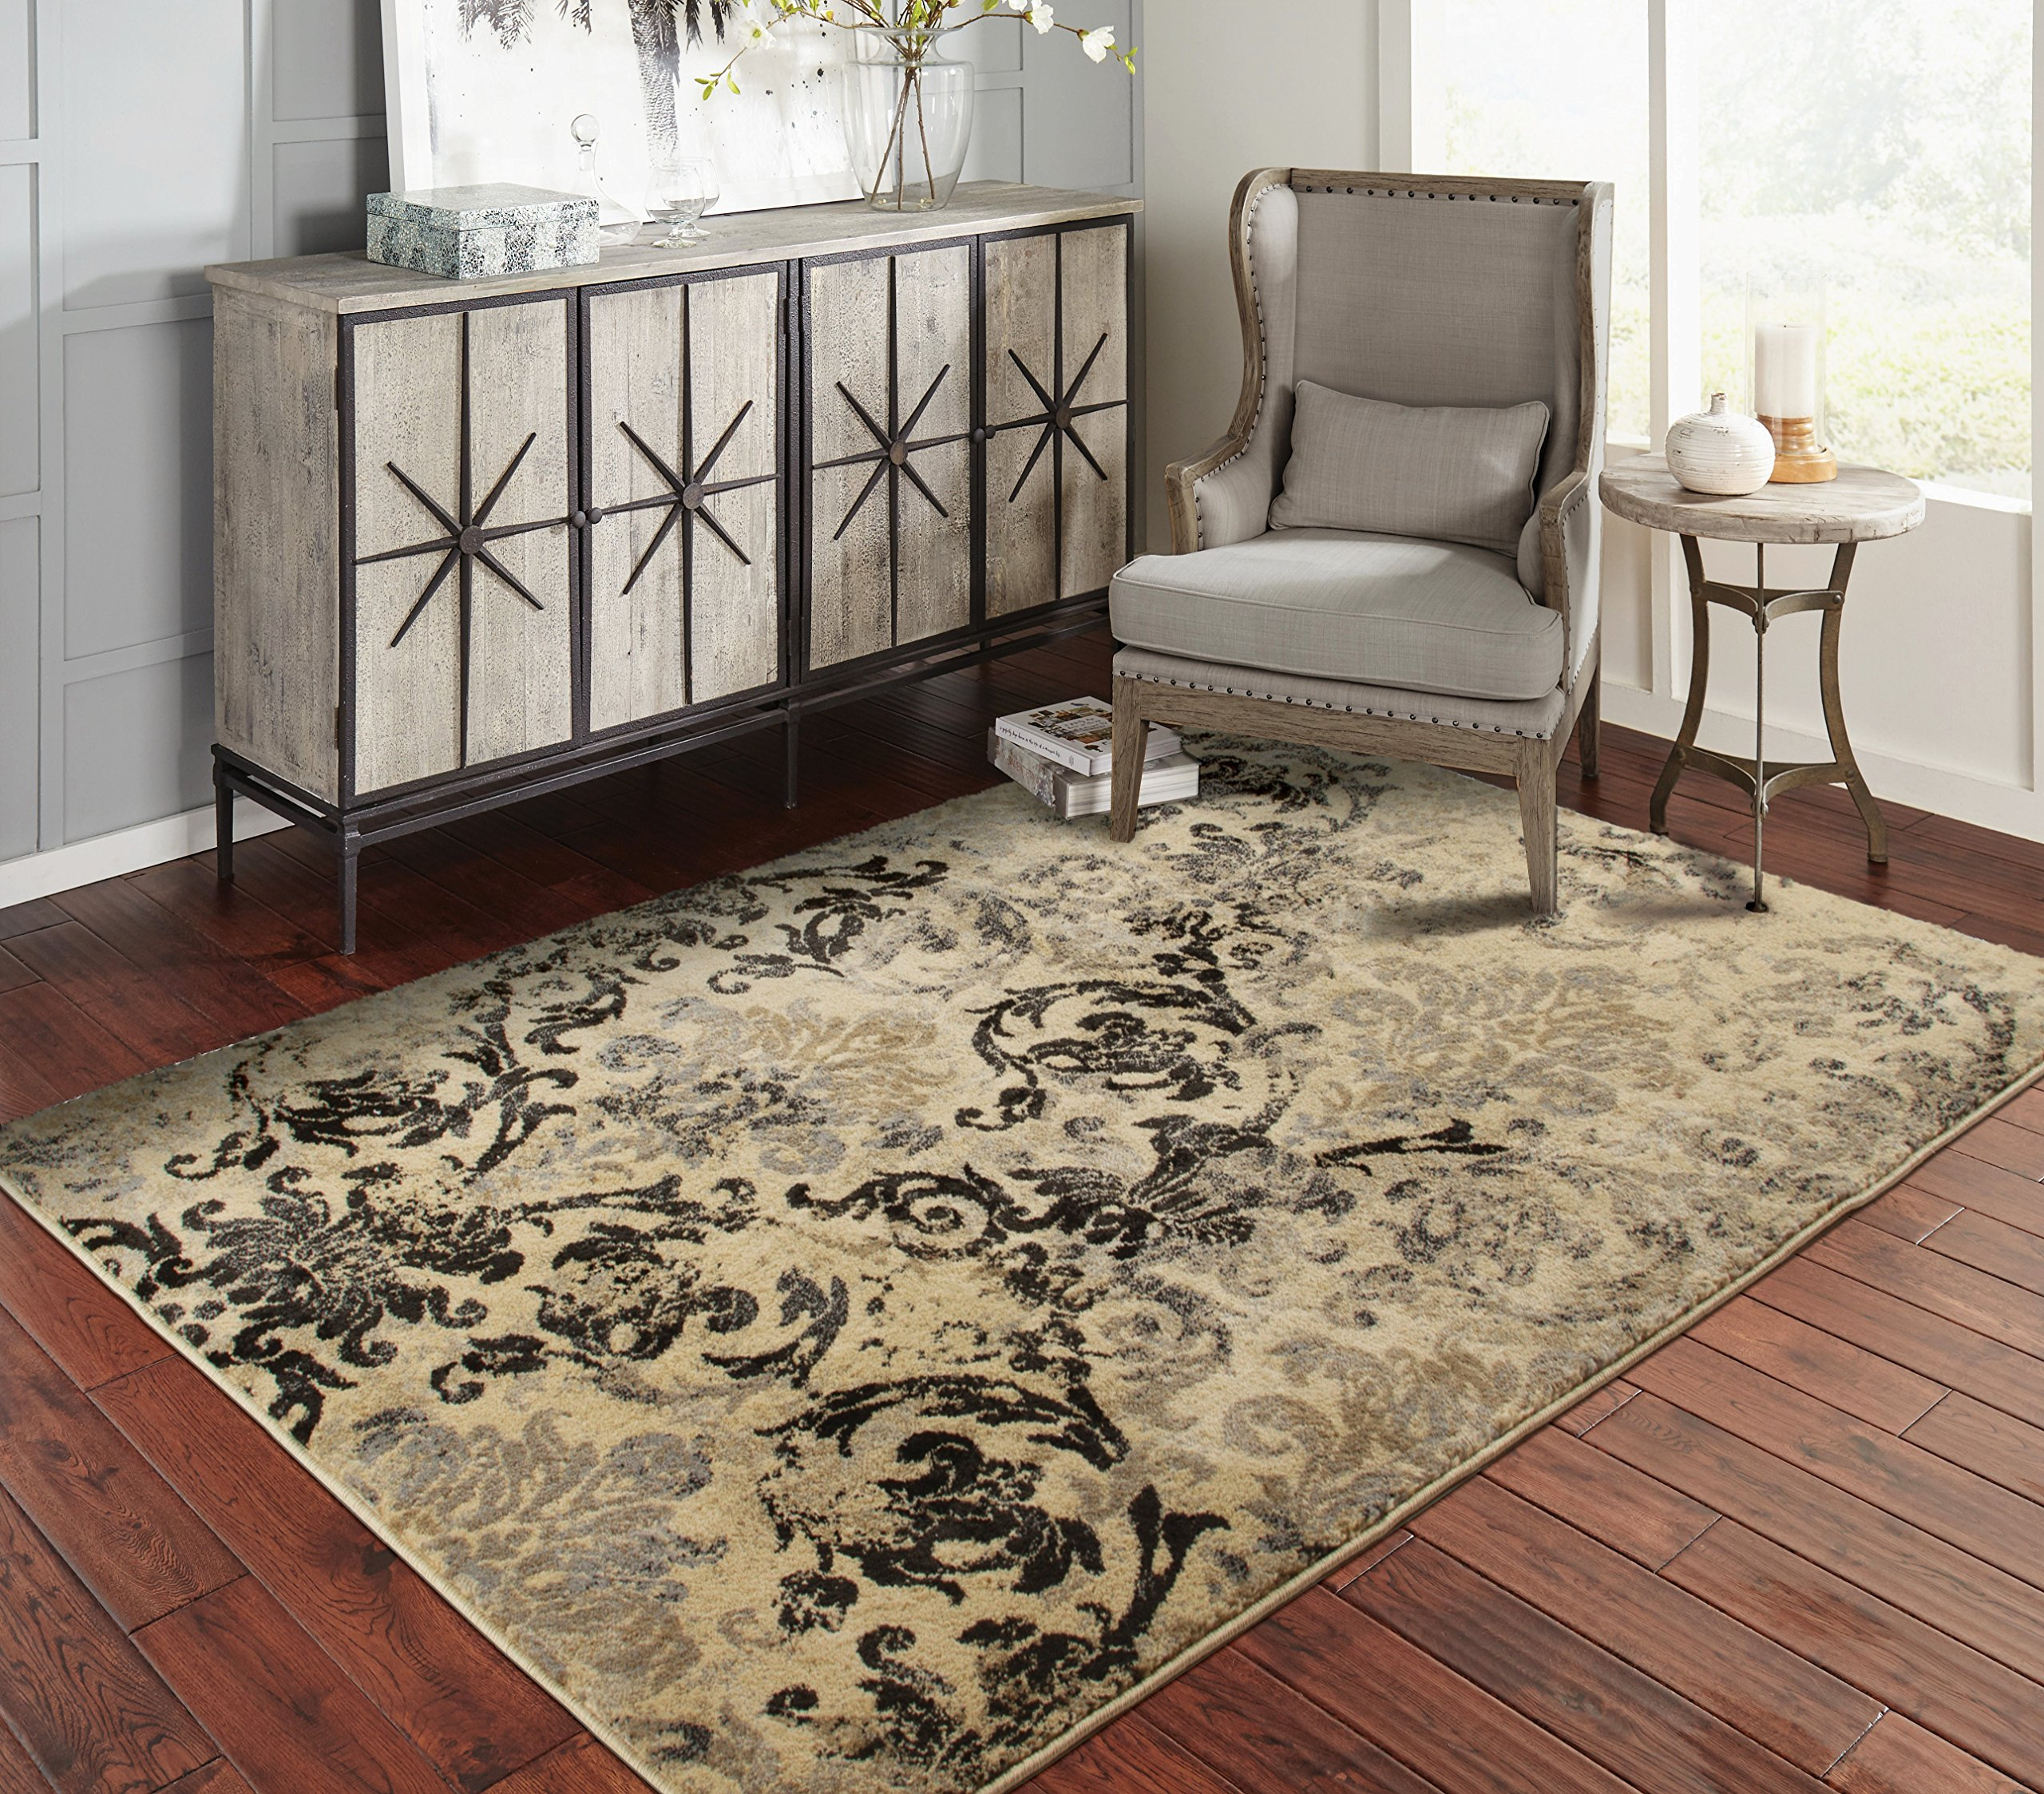 A.S Quality Rugs Modern Distressed Rugs for Living Room 5x7 Black Clearance Rugs for Bedroom 5x8 by A.S Quality Rugs